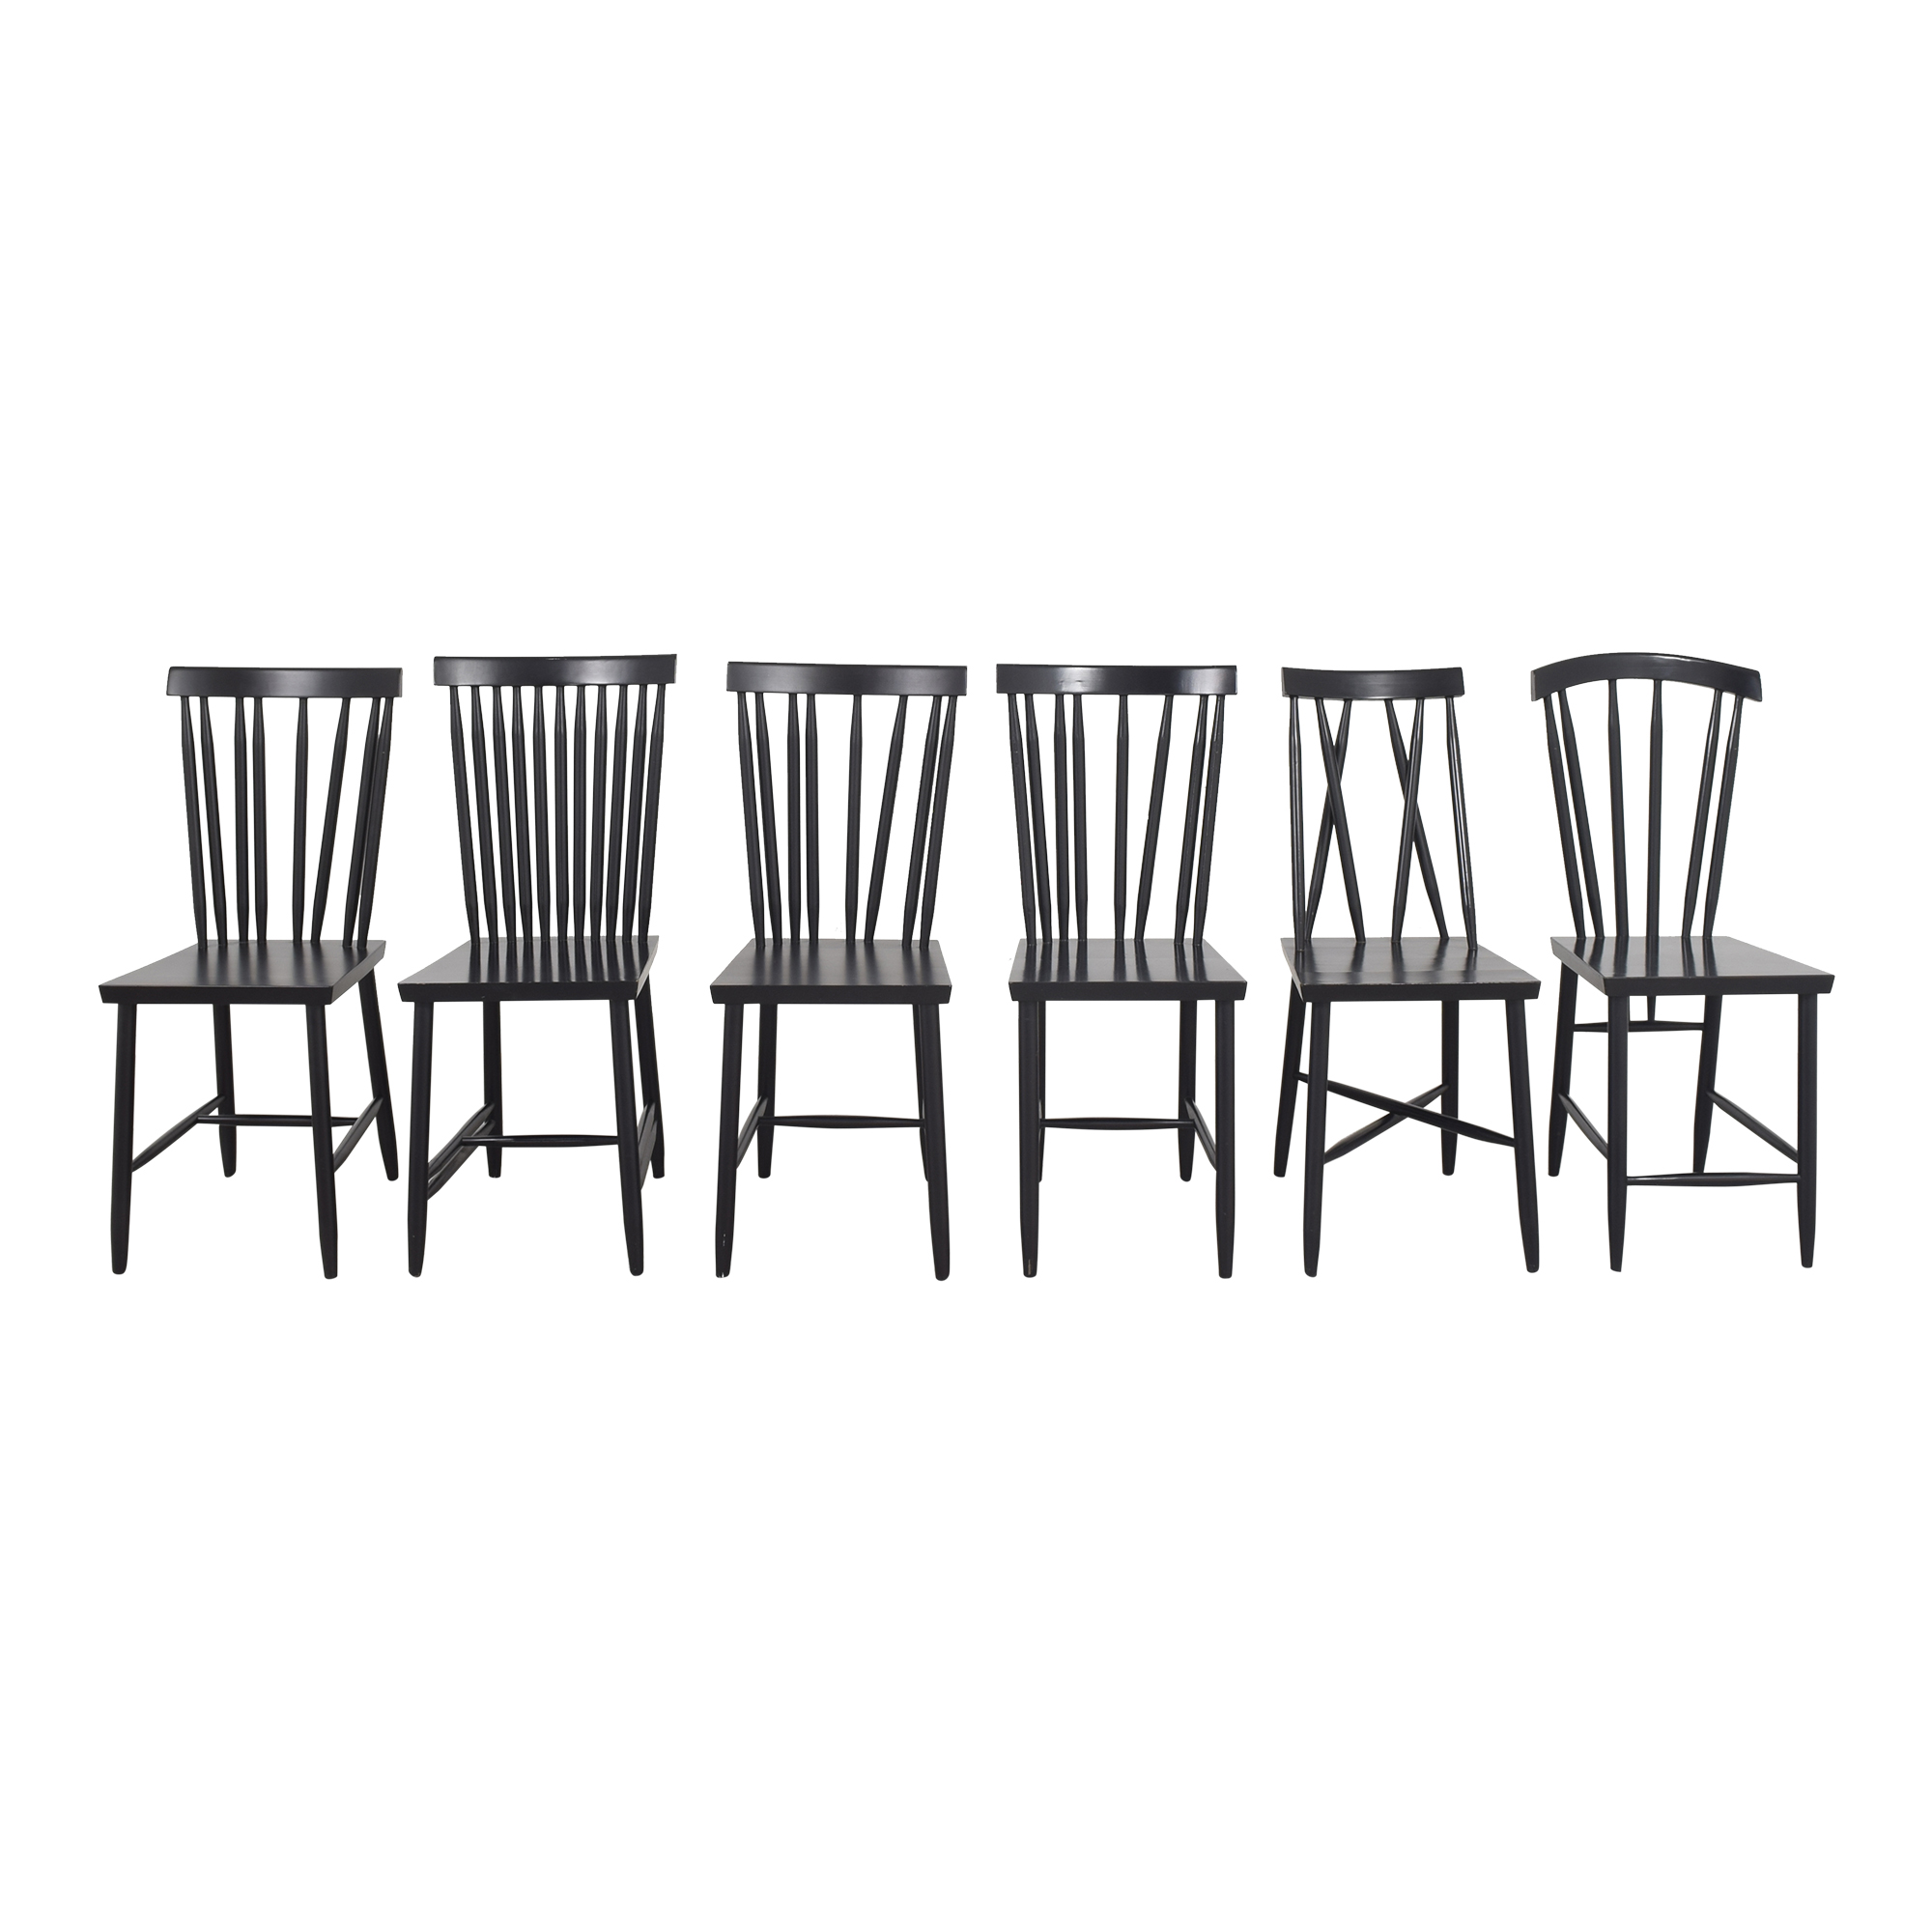 shop Design House Stockholm Design House Stockholm Lina Nordqvist Dining Chairs online